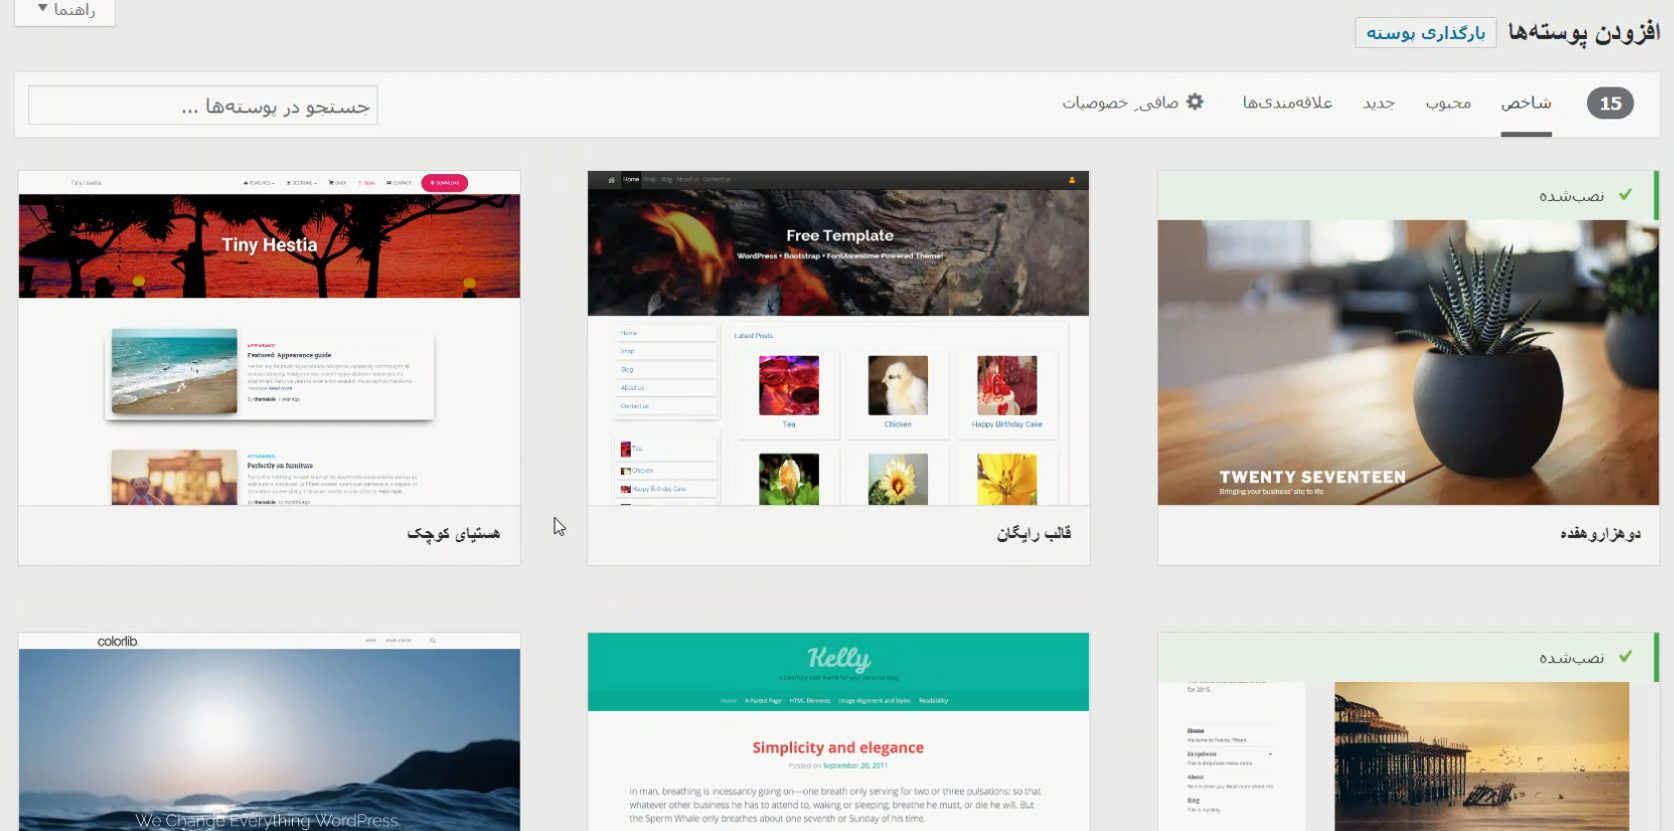 wordpress themes add theme